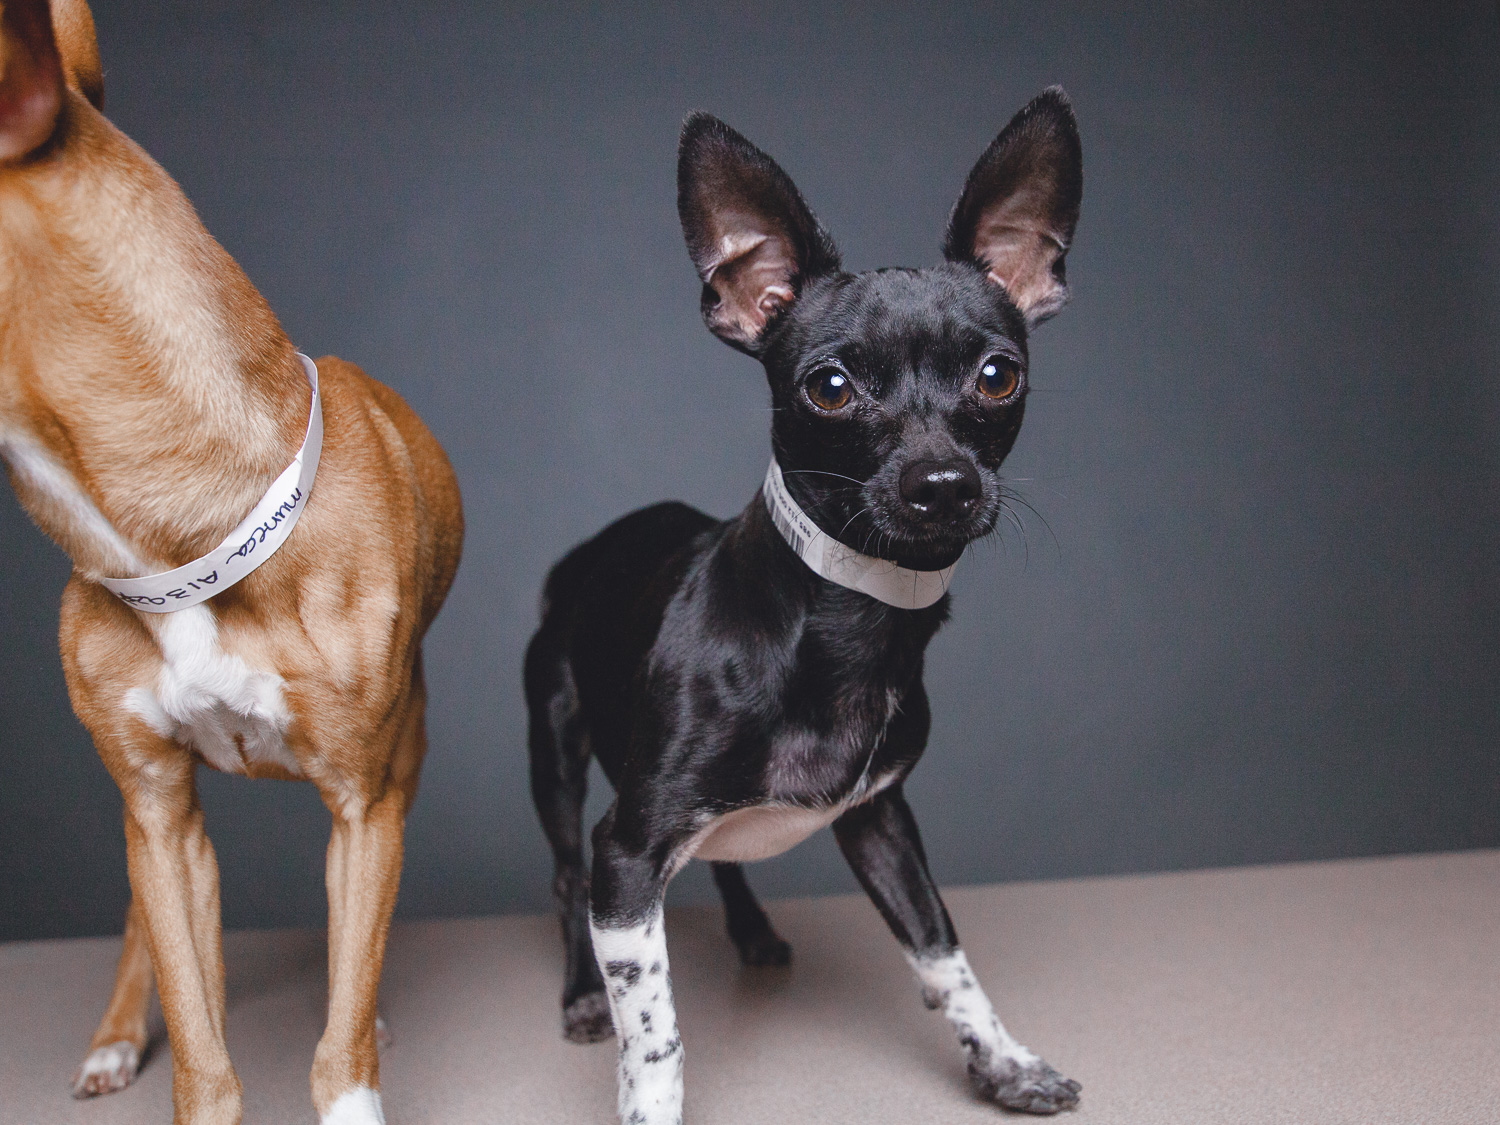 Adoptable Chihuahuas in Chicago